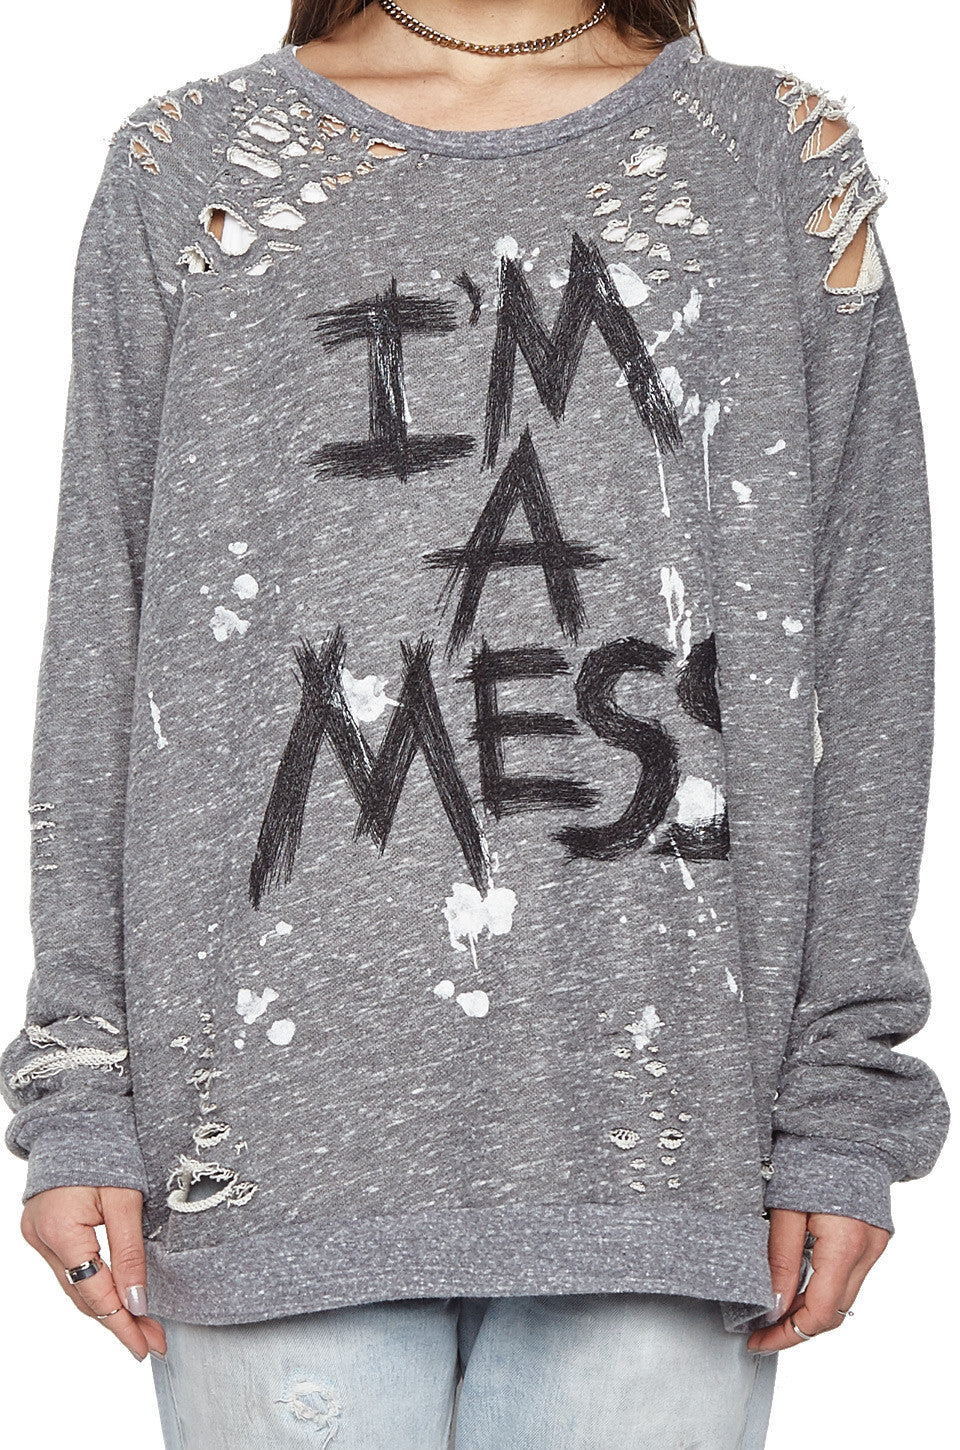 Lauren Moshi Women's X Exclusive X Jetta I'm A Mess Oversized Distressed Pullover